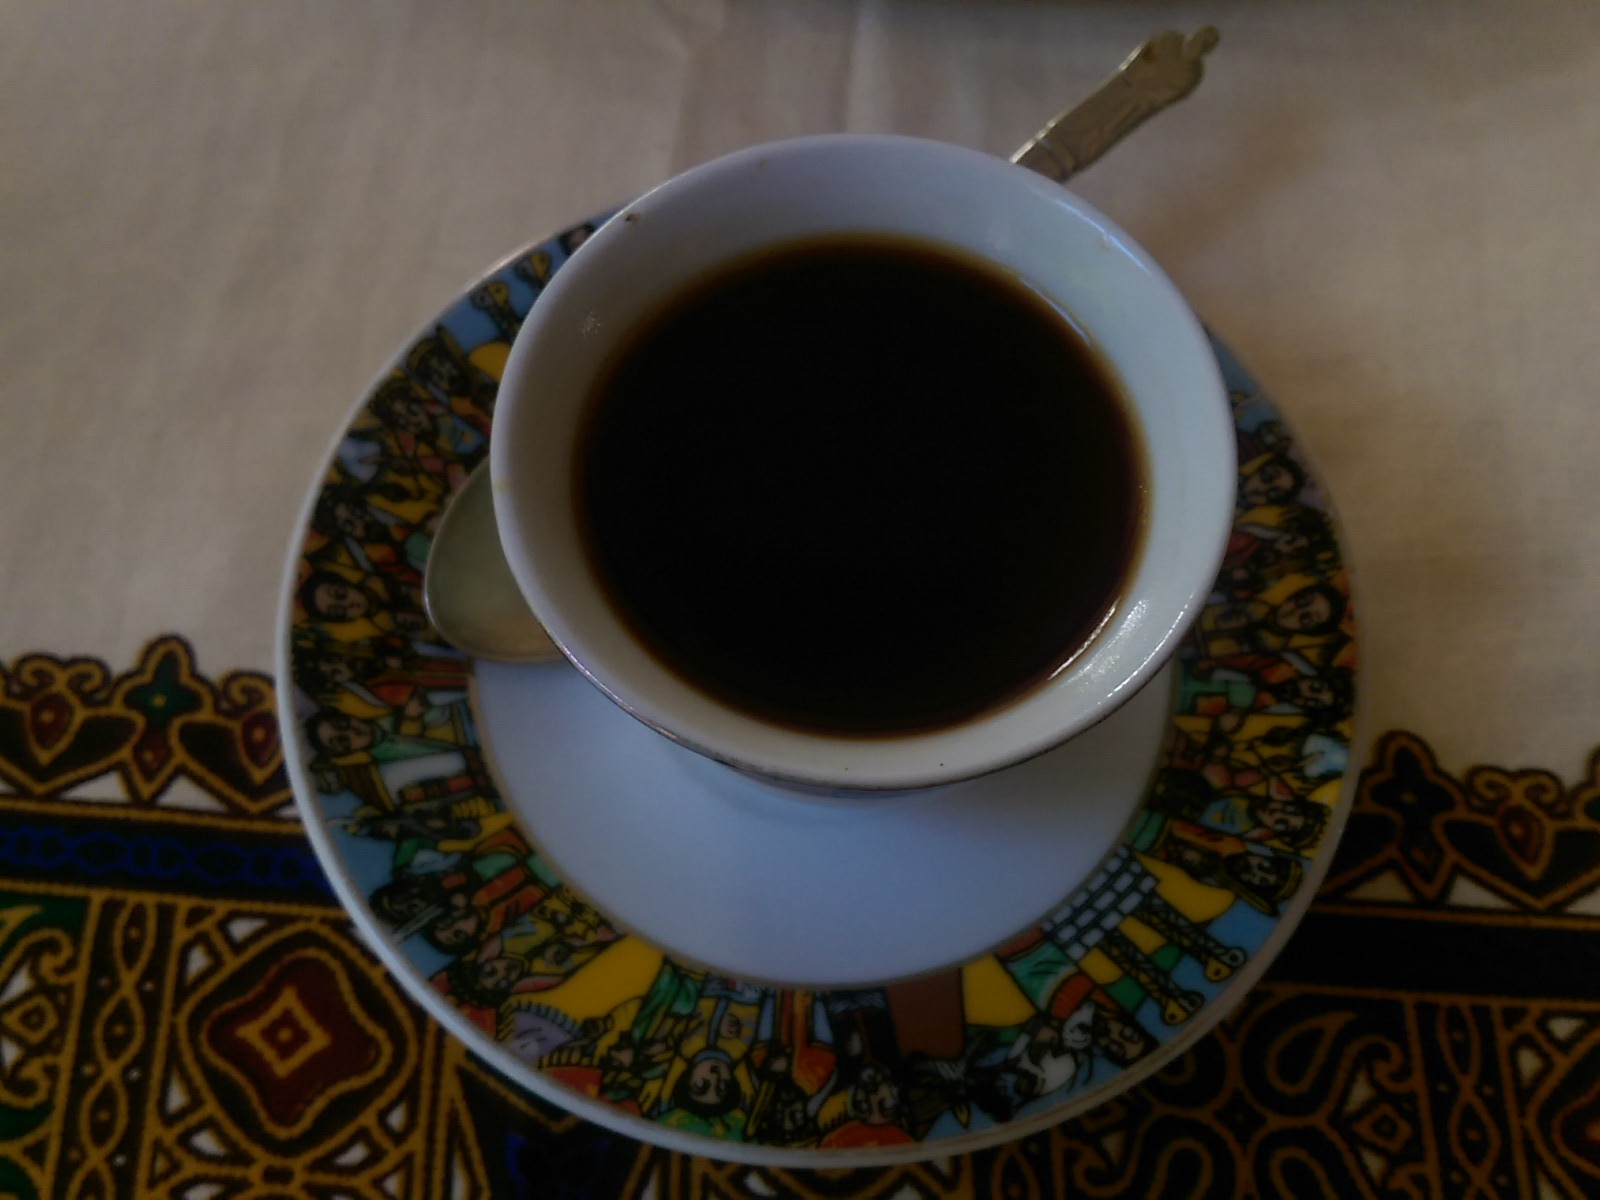 View from above of a small white coffeecup and saucer, filled with dark liquid